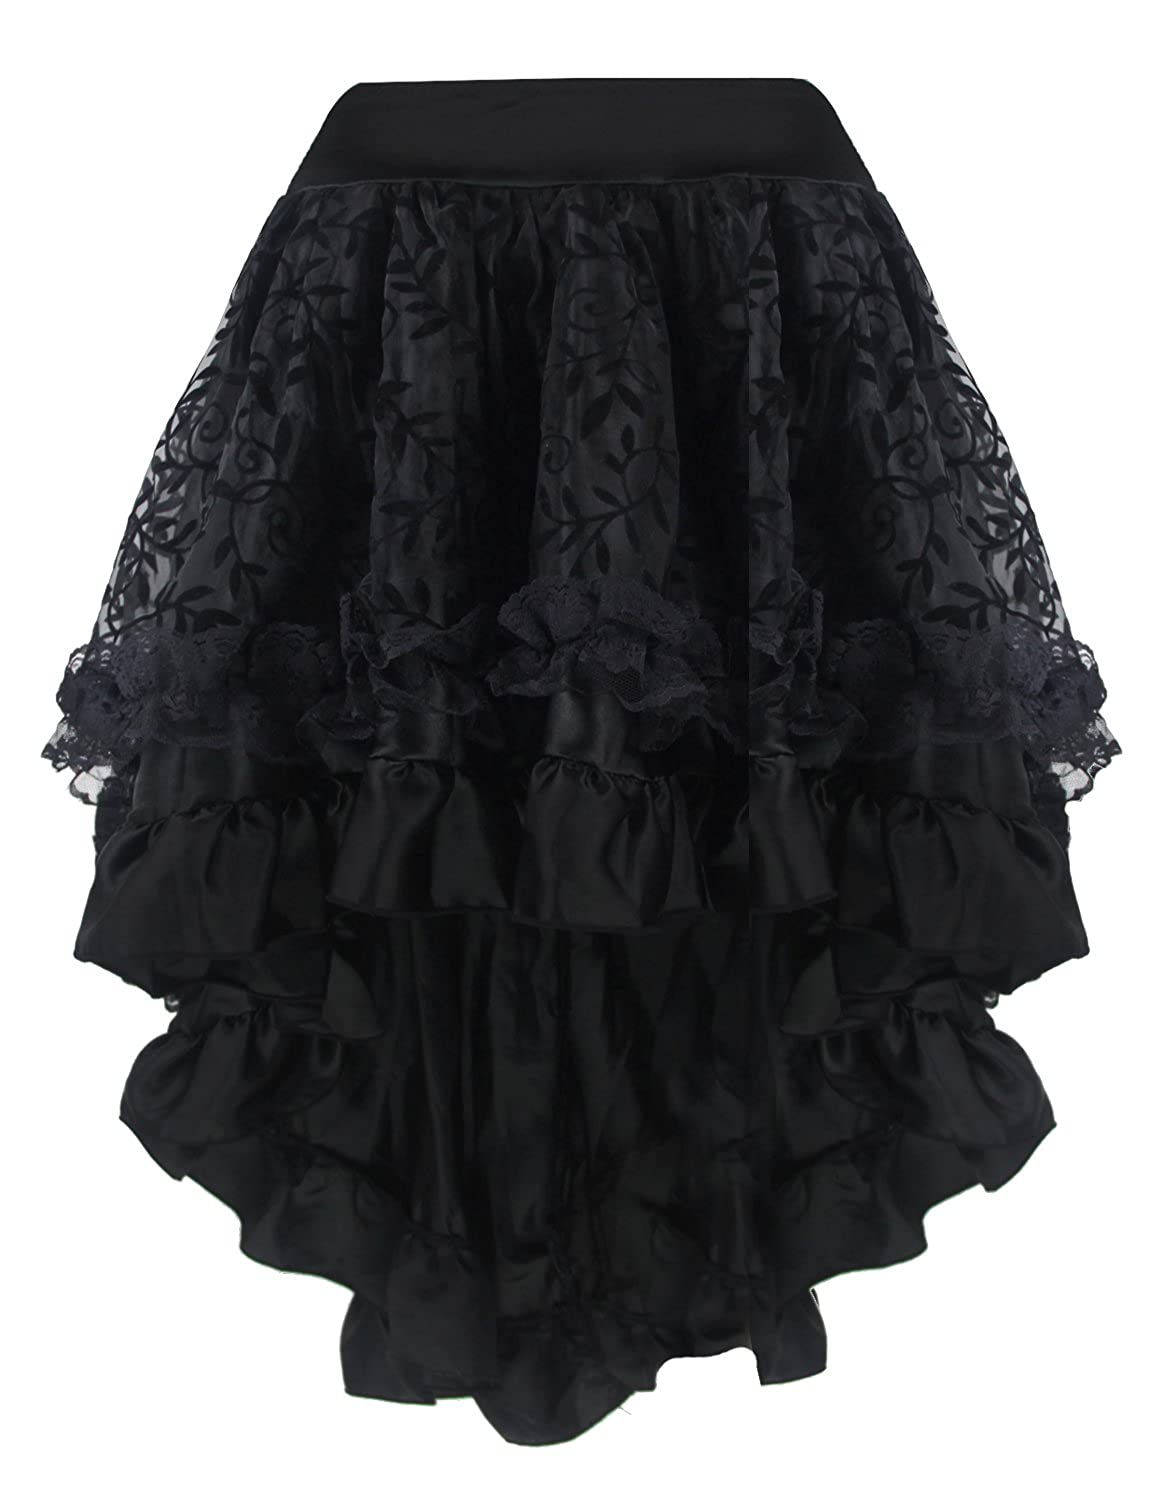 Steampunk Plus Size Clothing & Costumes Burvogue Womens Gothic Steampunk Costume Vintage Multi Layered Chiffon Skirt $29.99 AT vintagedancer.com